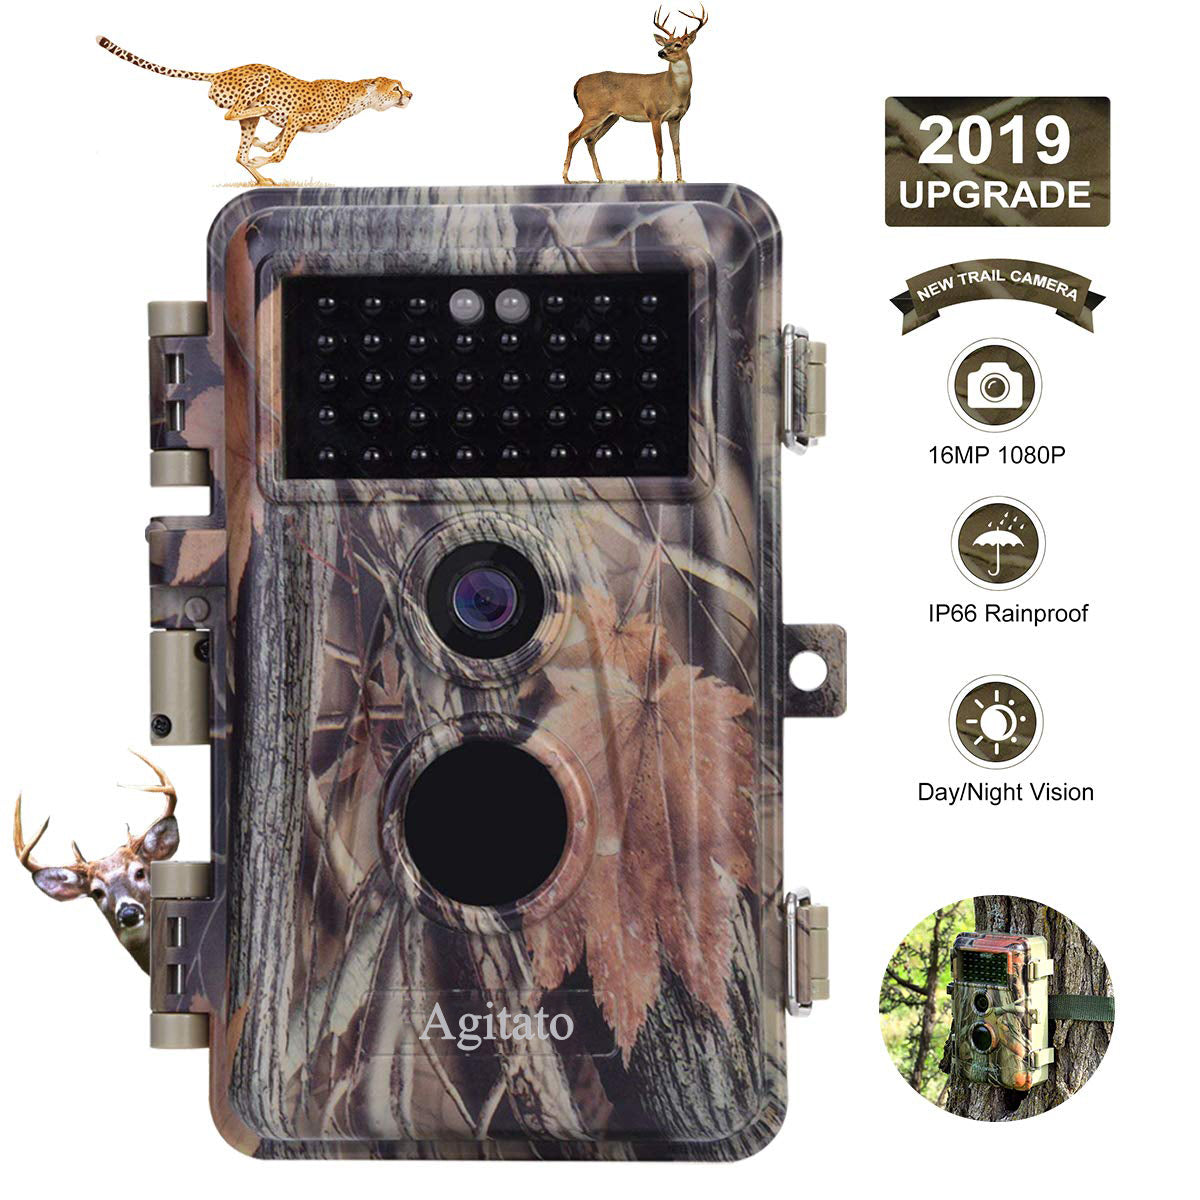 5-Pack Night Vision Game Trail Deer Cams No Flash 16MP 1080P Waterproof & Password Protected Stand By Time Up to 6 Months, Time Lapse & Time Stamp